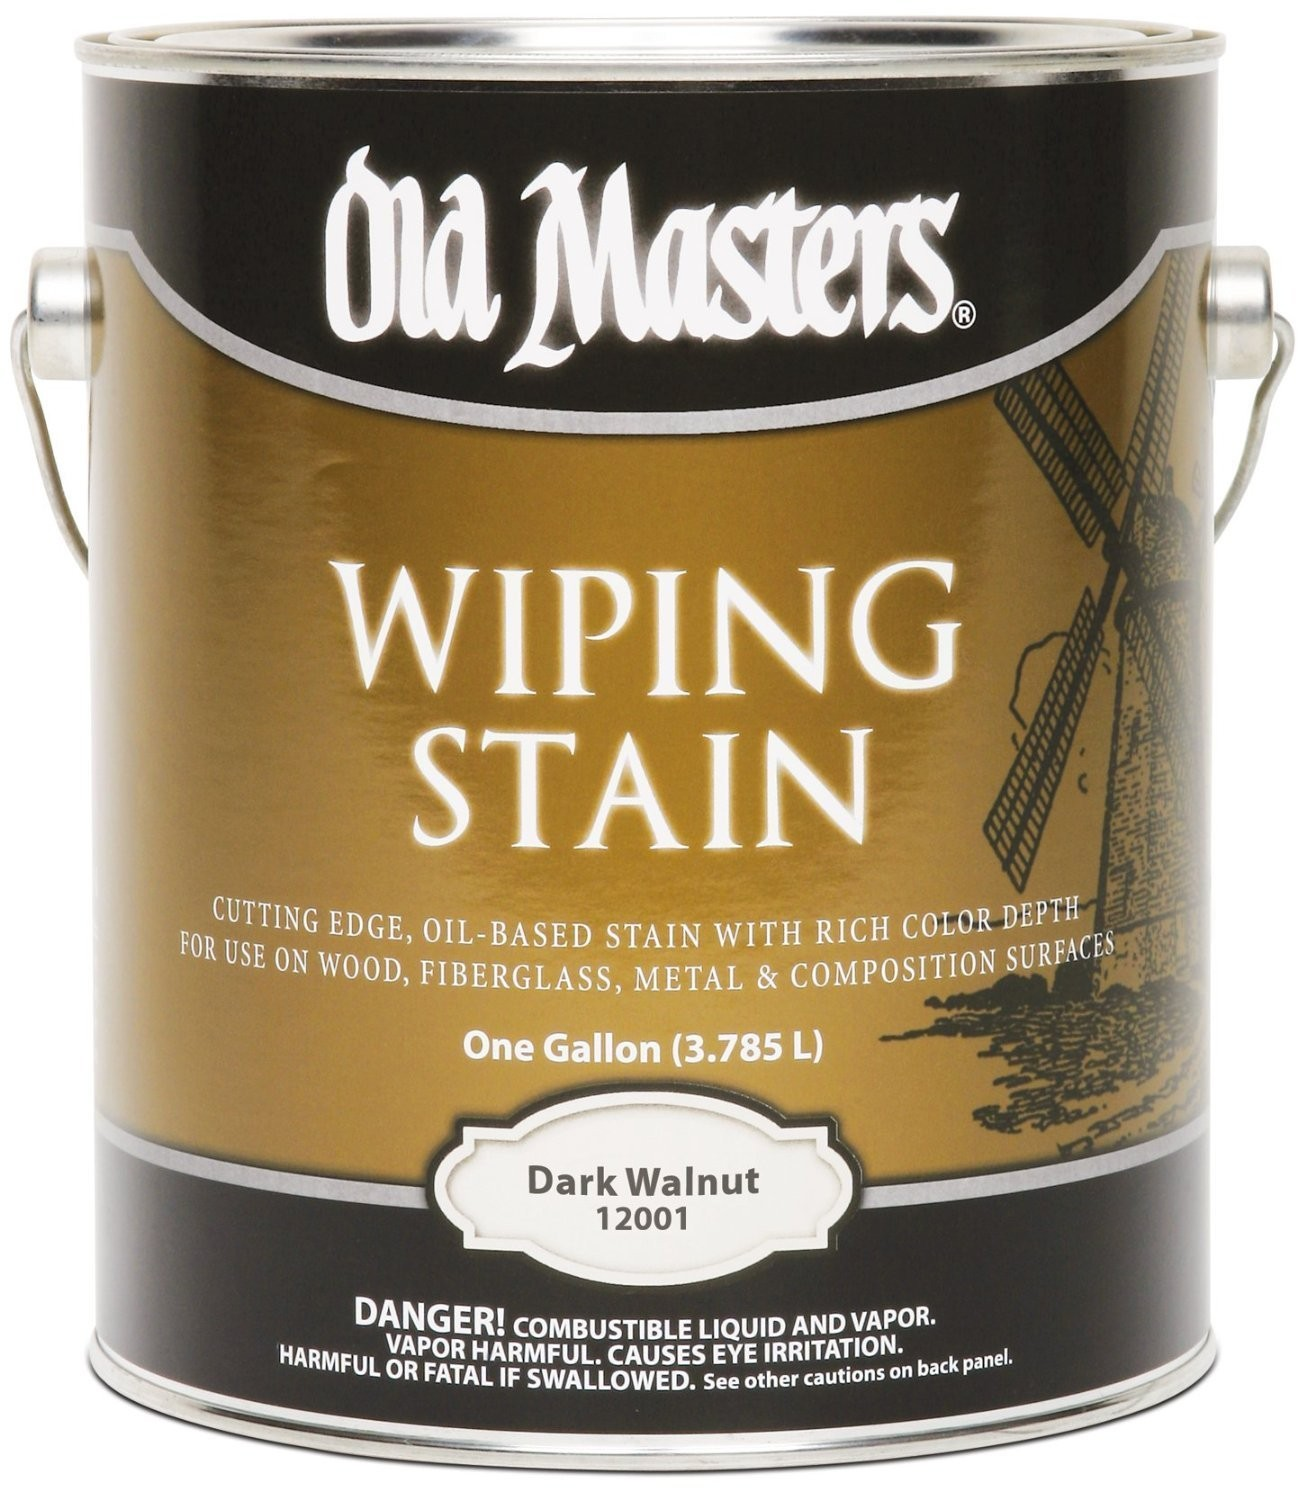 Buy The Old Masters 12001 Wiping Wood Stain Dark Walnut Gallon Hardware World